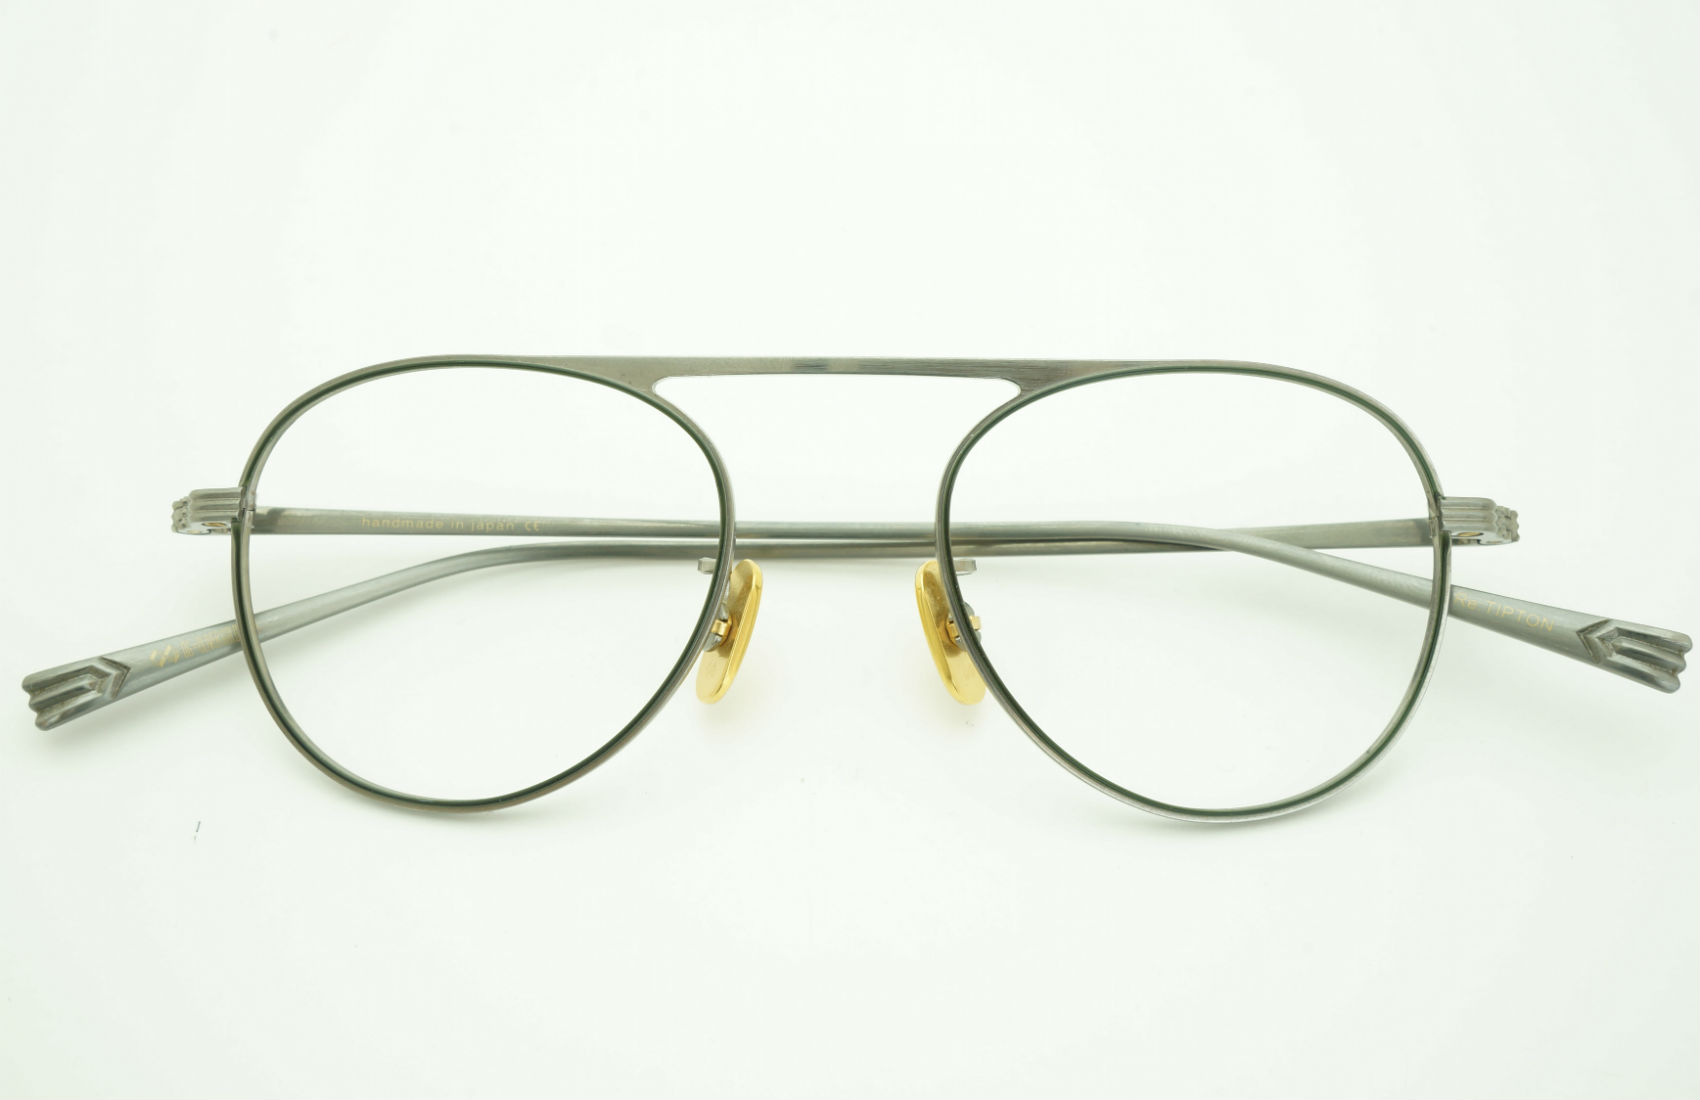 OG×OLIVERGOLDSMITH RE:TIPTON